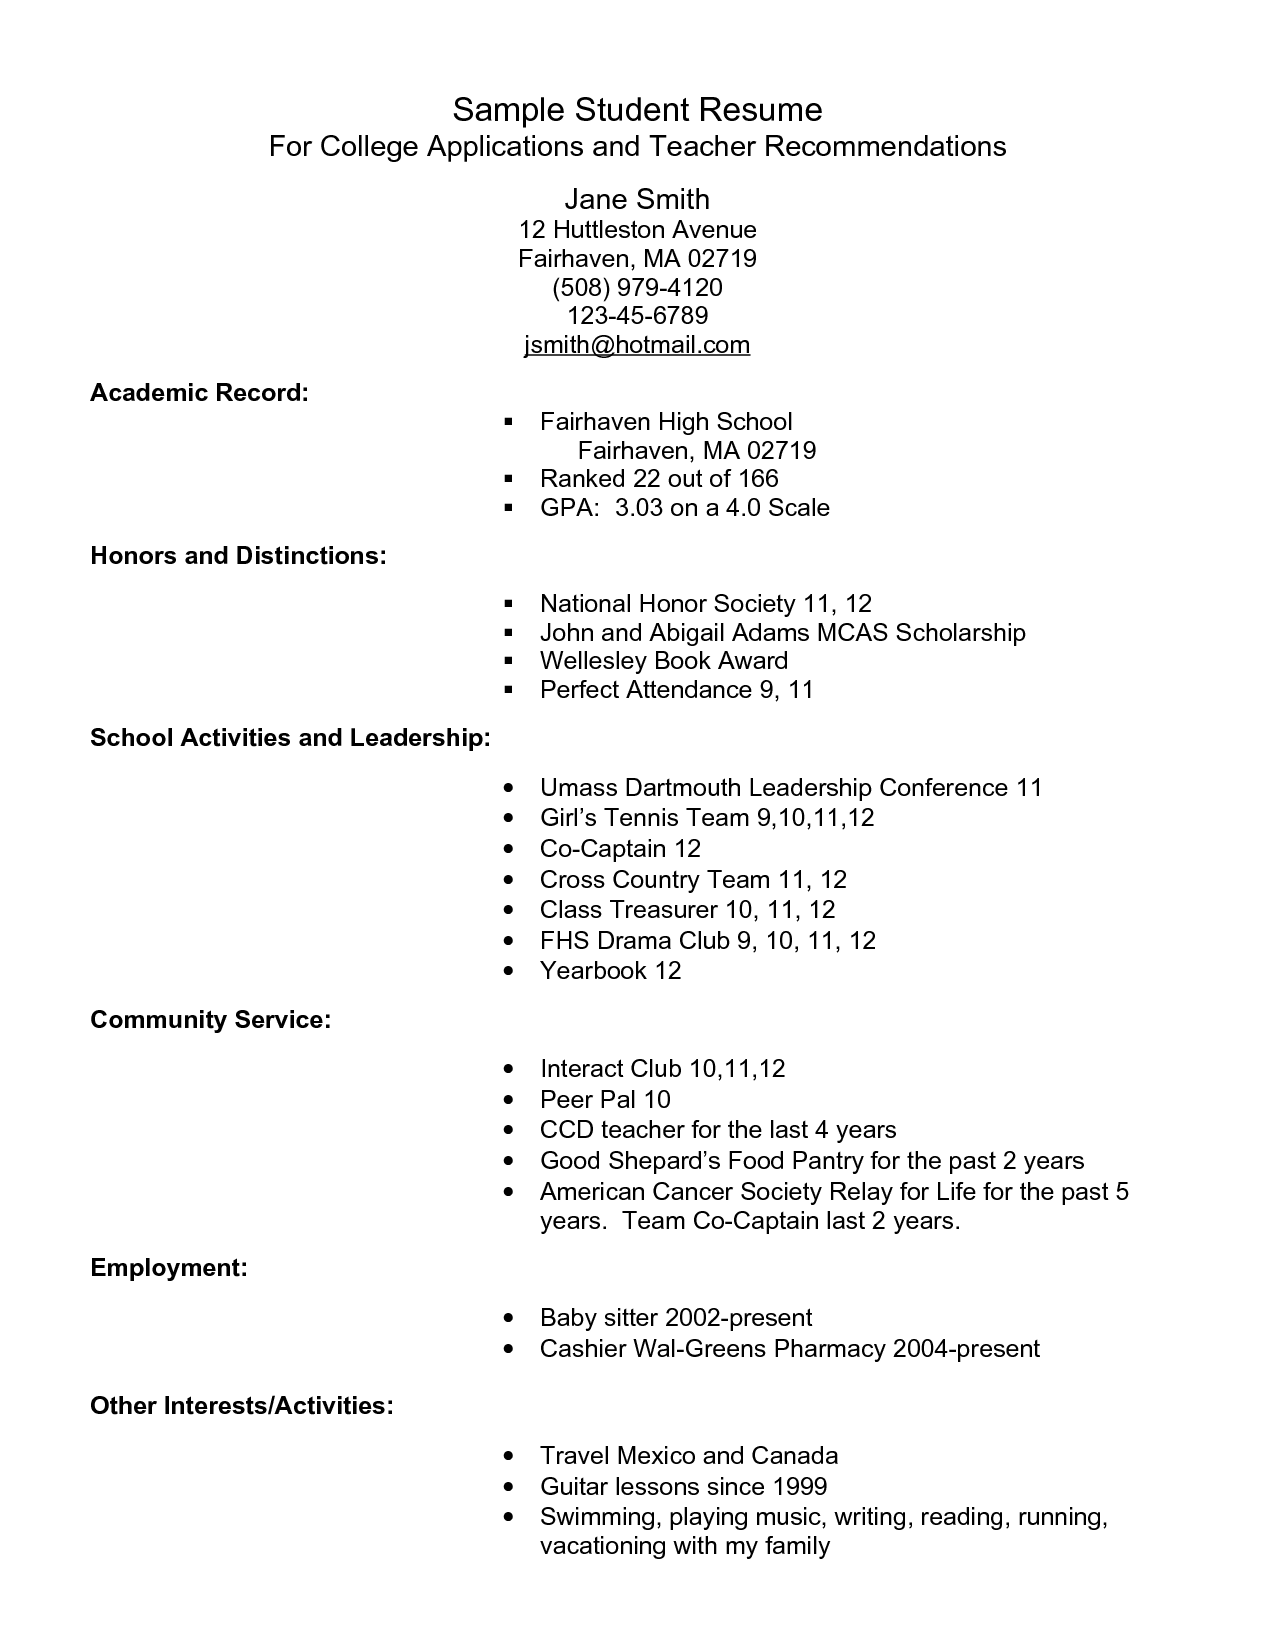 College Student Resume Example Resume For High School Students For College Applications